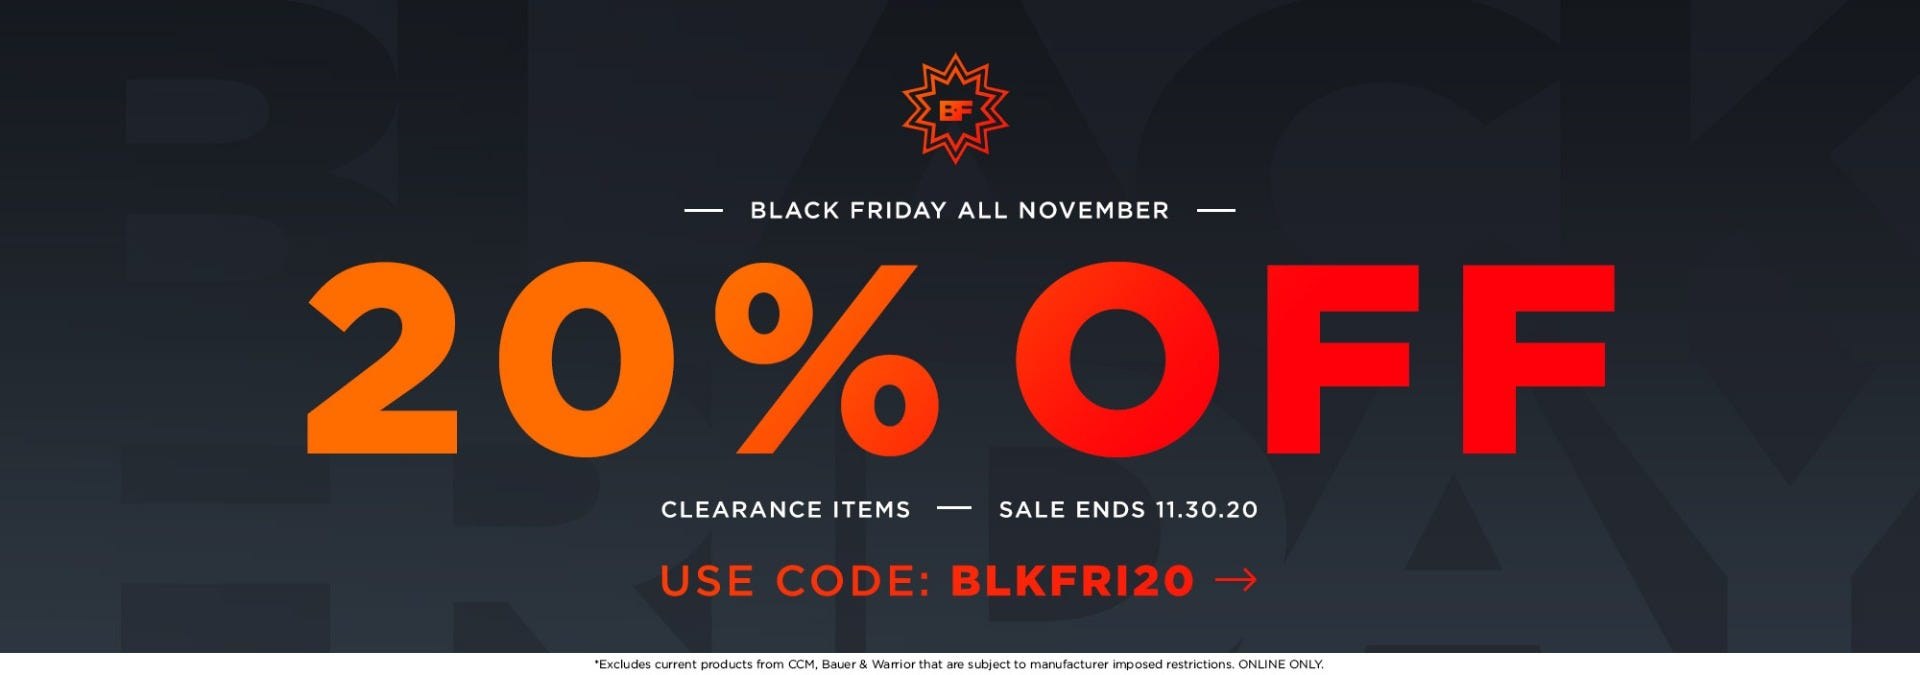 Black Friday All November: 20% off clearance